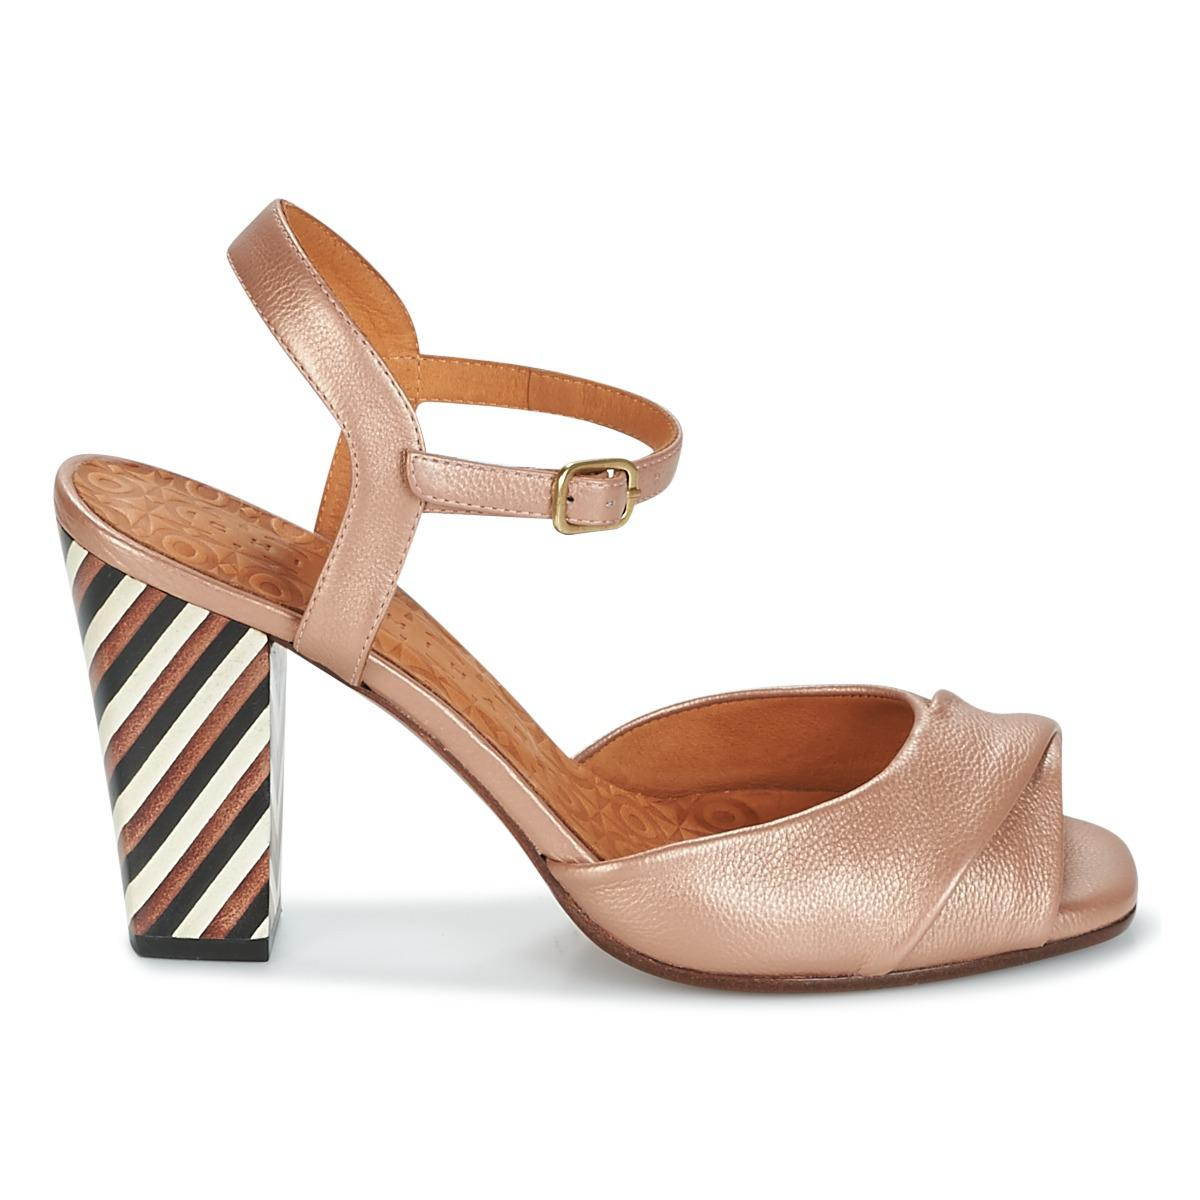 9747cc066ac9c3 Chie Mihara Brial Women s Sandals In Pink in Pink - Lyst